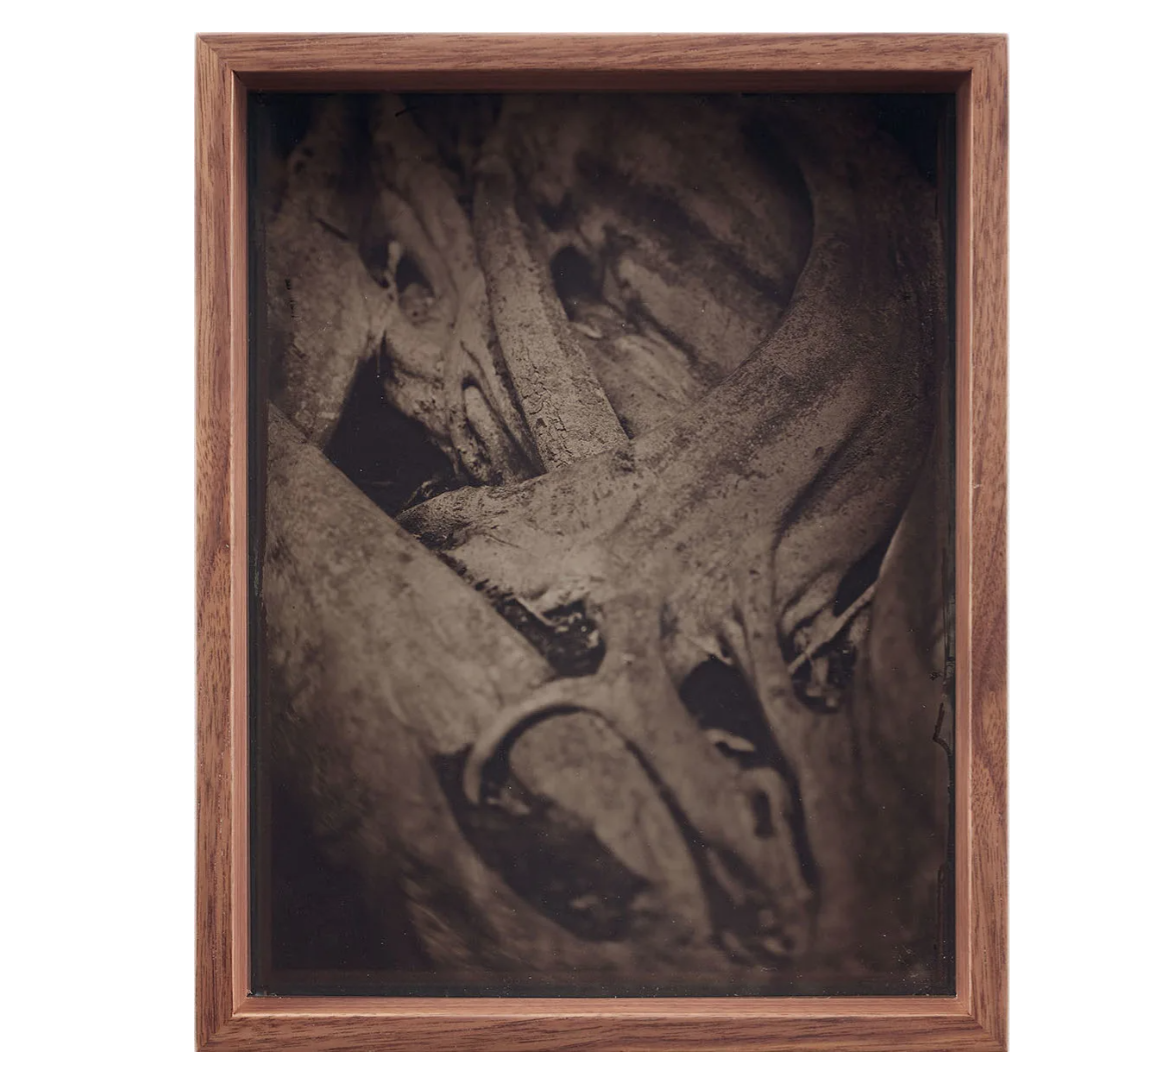 MARTÍN SOTO CLIMENT DETAIL (COLLODION 2), 2020 Glass negative with black foil backing and protected with anti-reflective museum glass. Walnut frame 20.5 x 25.5 x 8 cm 8 1/8 x 10 1/8 x 3 1/8 in Photo: Diane Arques